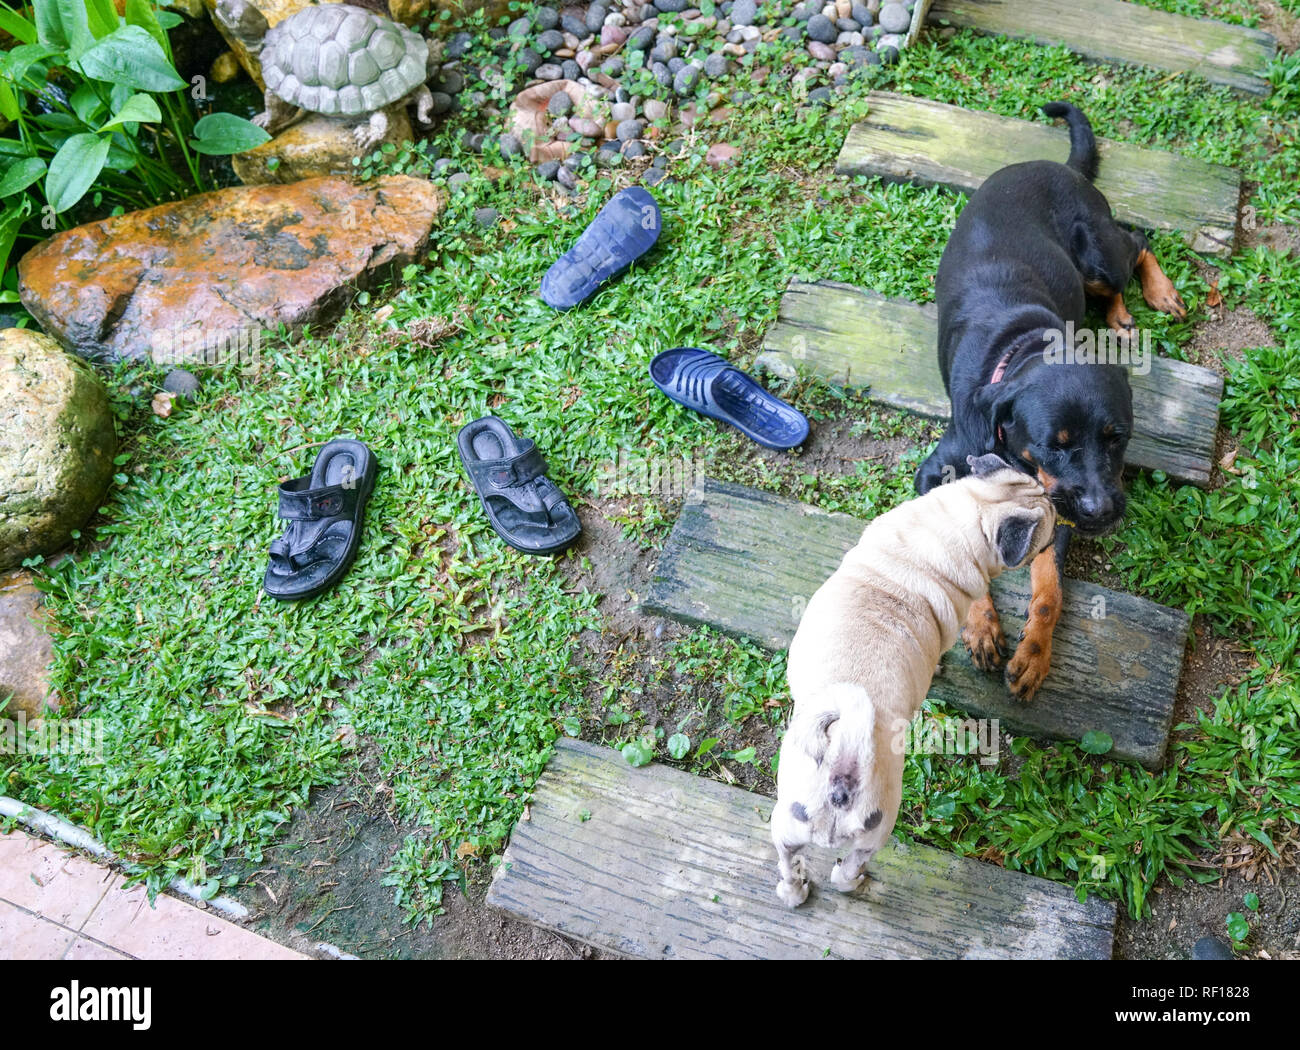 Pug and Rottweiler in a garden - Stock Image